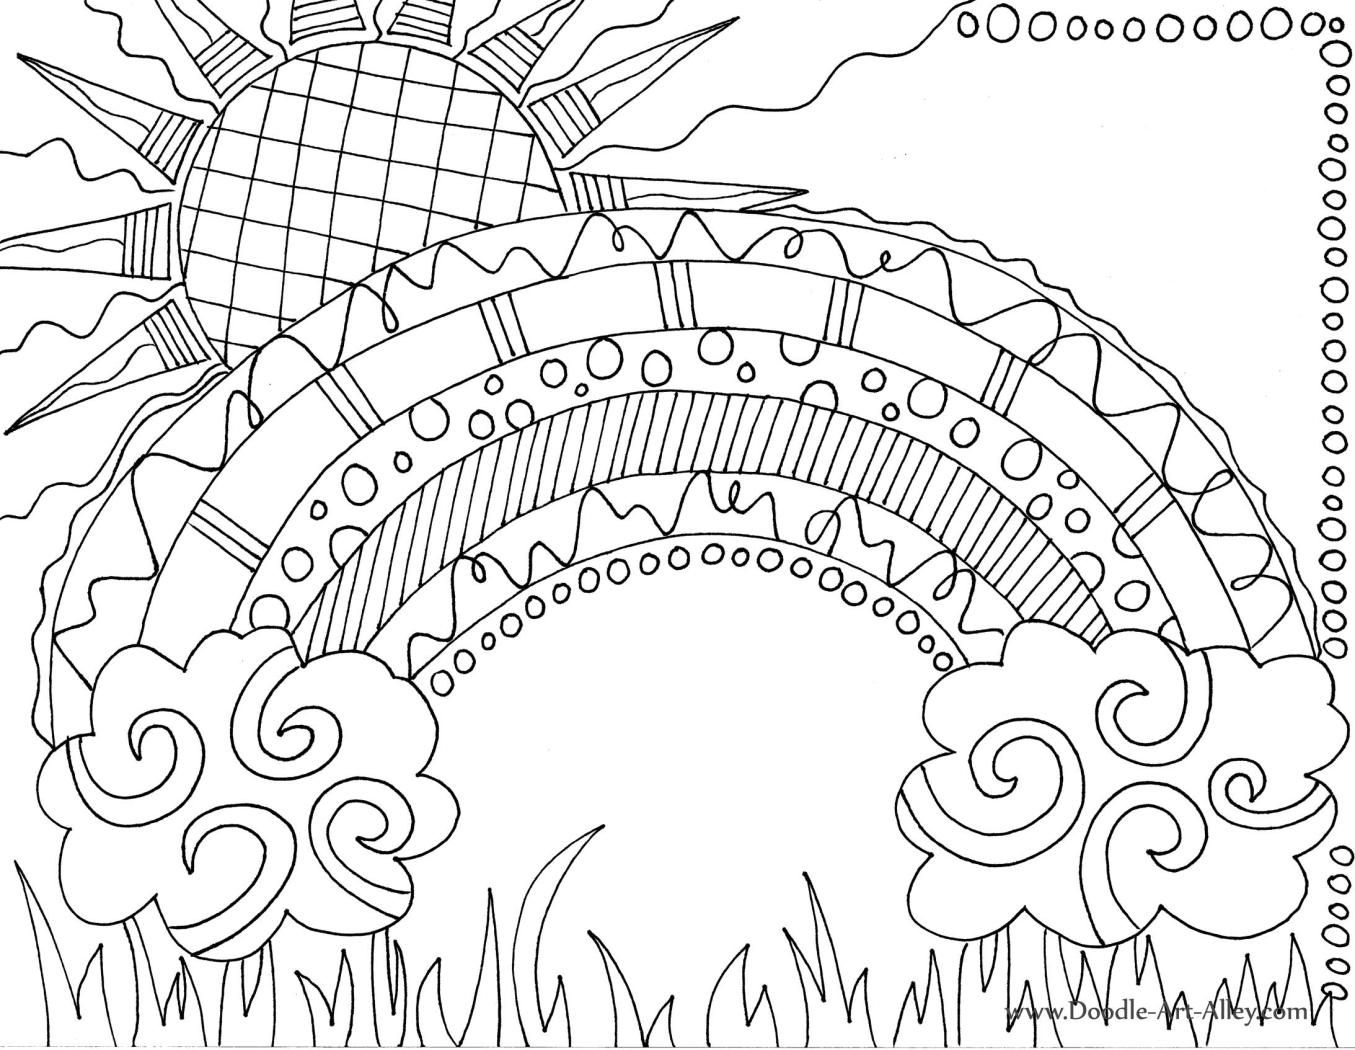 Rainbow Jpg Free Coloring Pages Coloring Pages Doodle Coloring